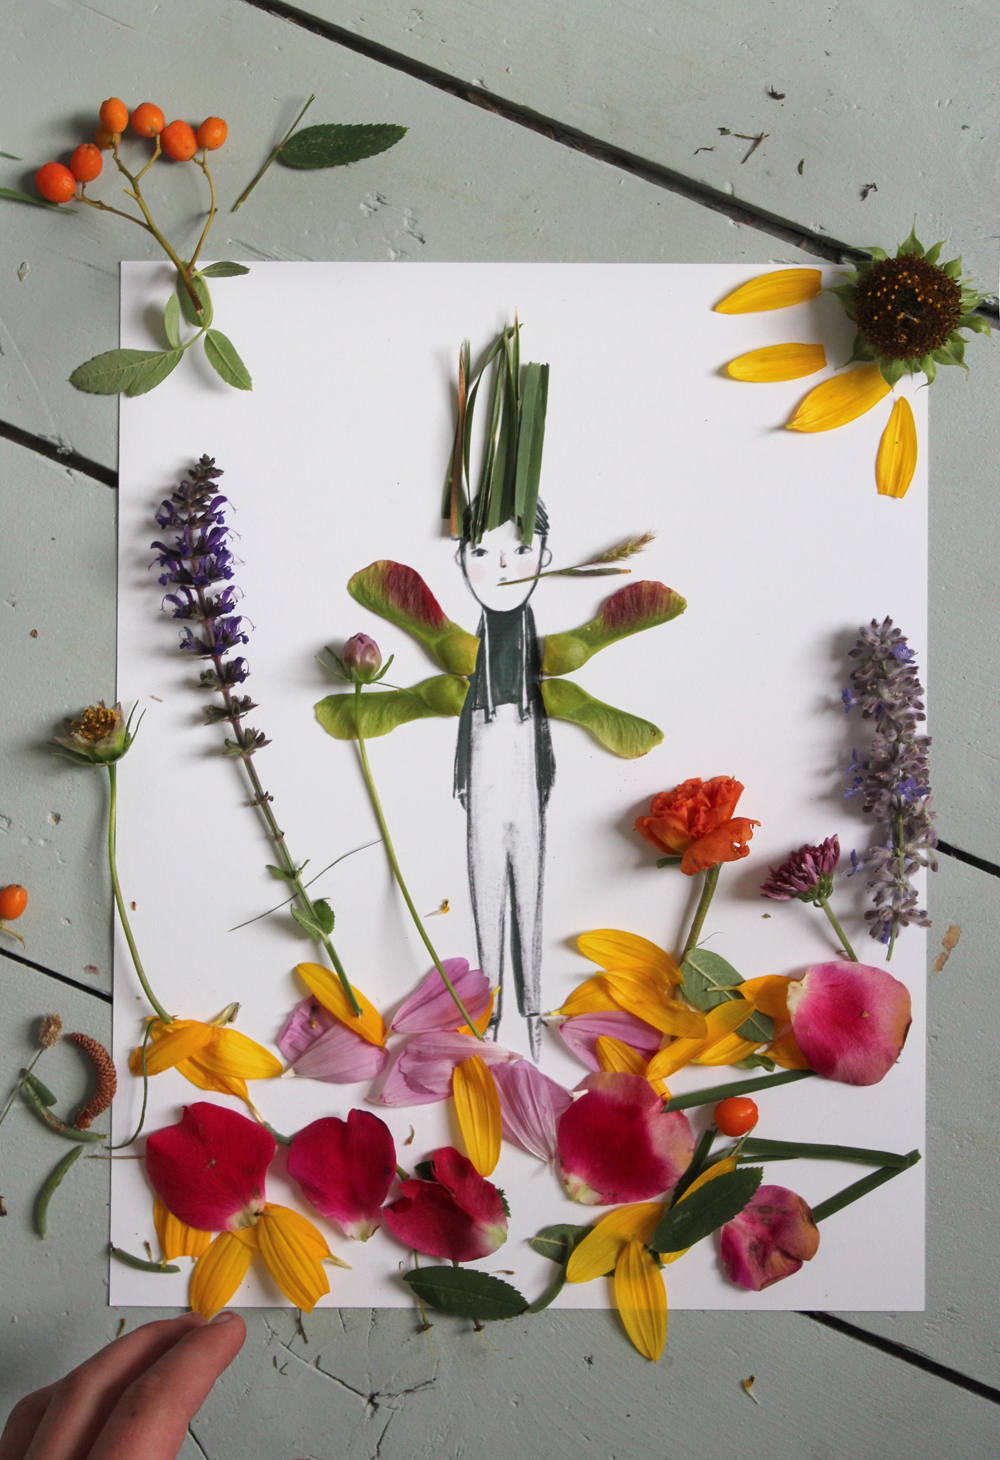 Nature Paper Dolls by Mer Mag. Come be charmed by these Sweet Spring Crafts & Finds to Welcome the Season!